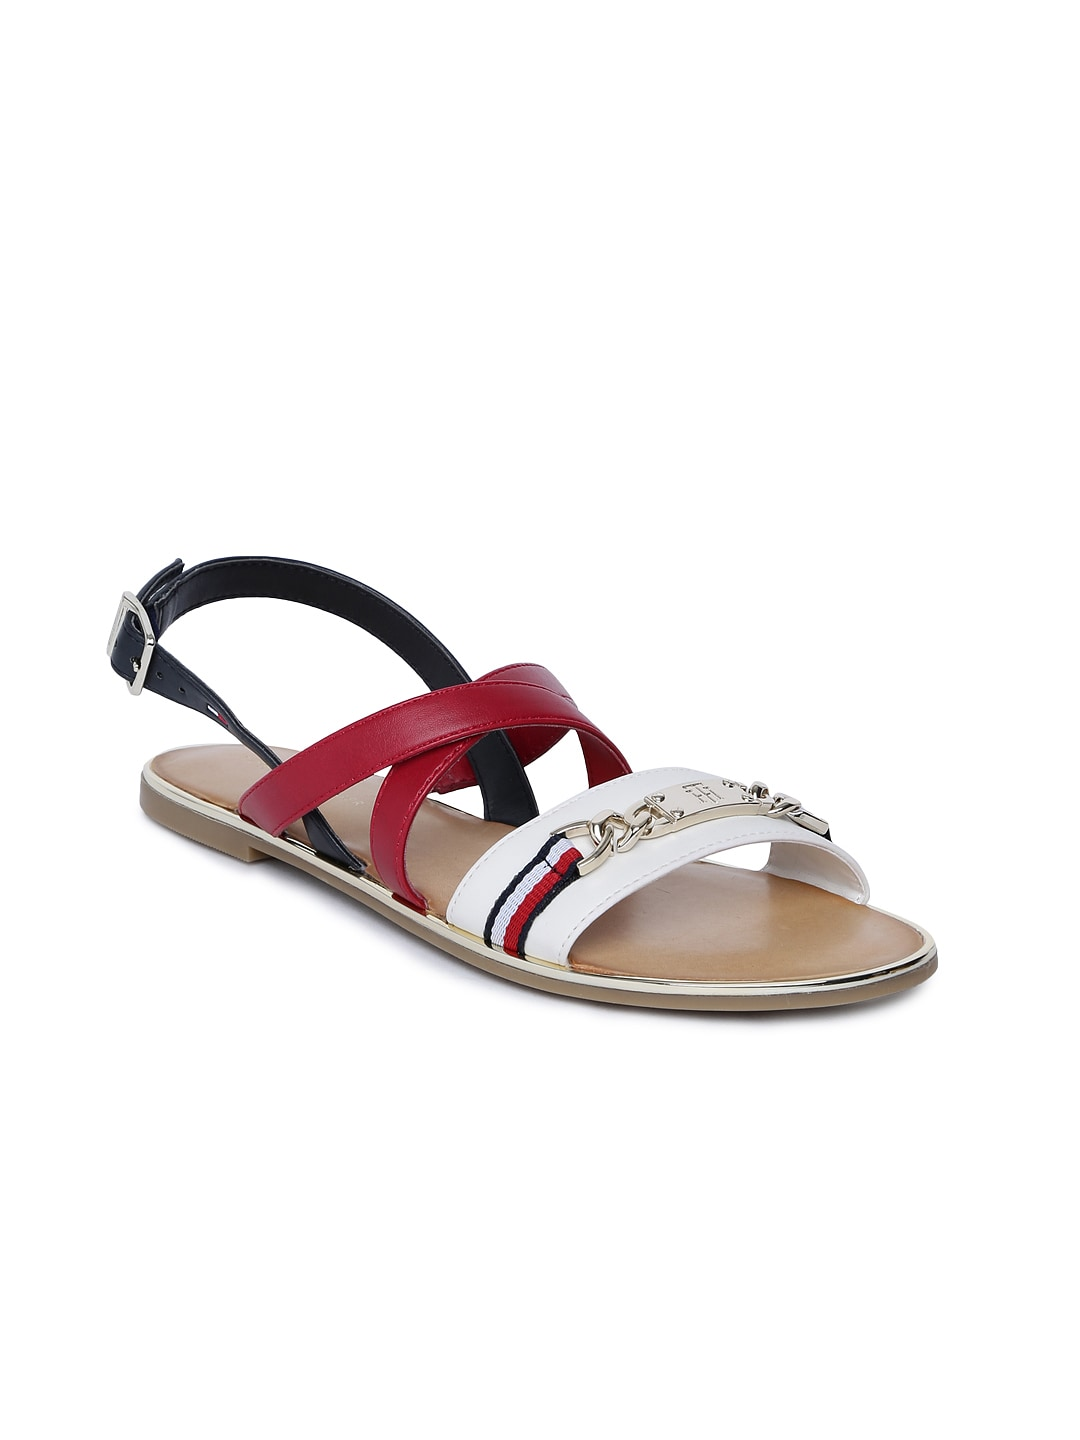 c35988ac4 Women s Tommy Hilfiger Shoes - Buy Tommy Hilfiger Shoes for Women Online in  India